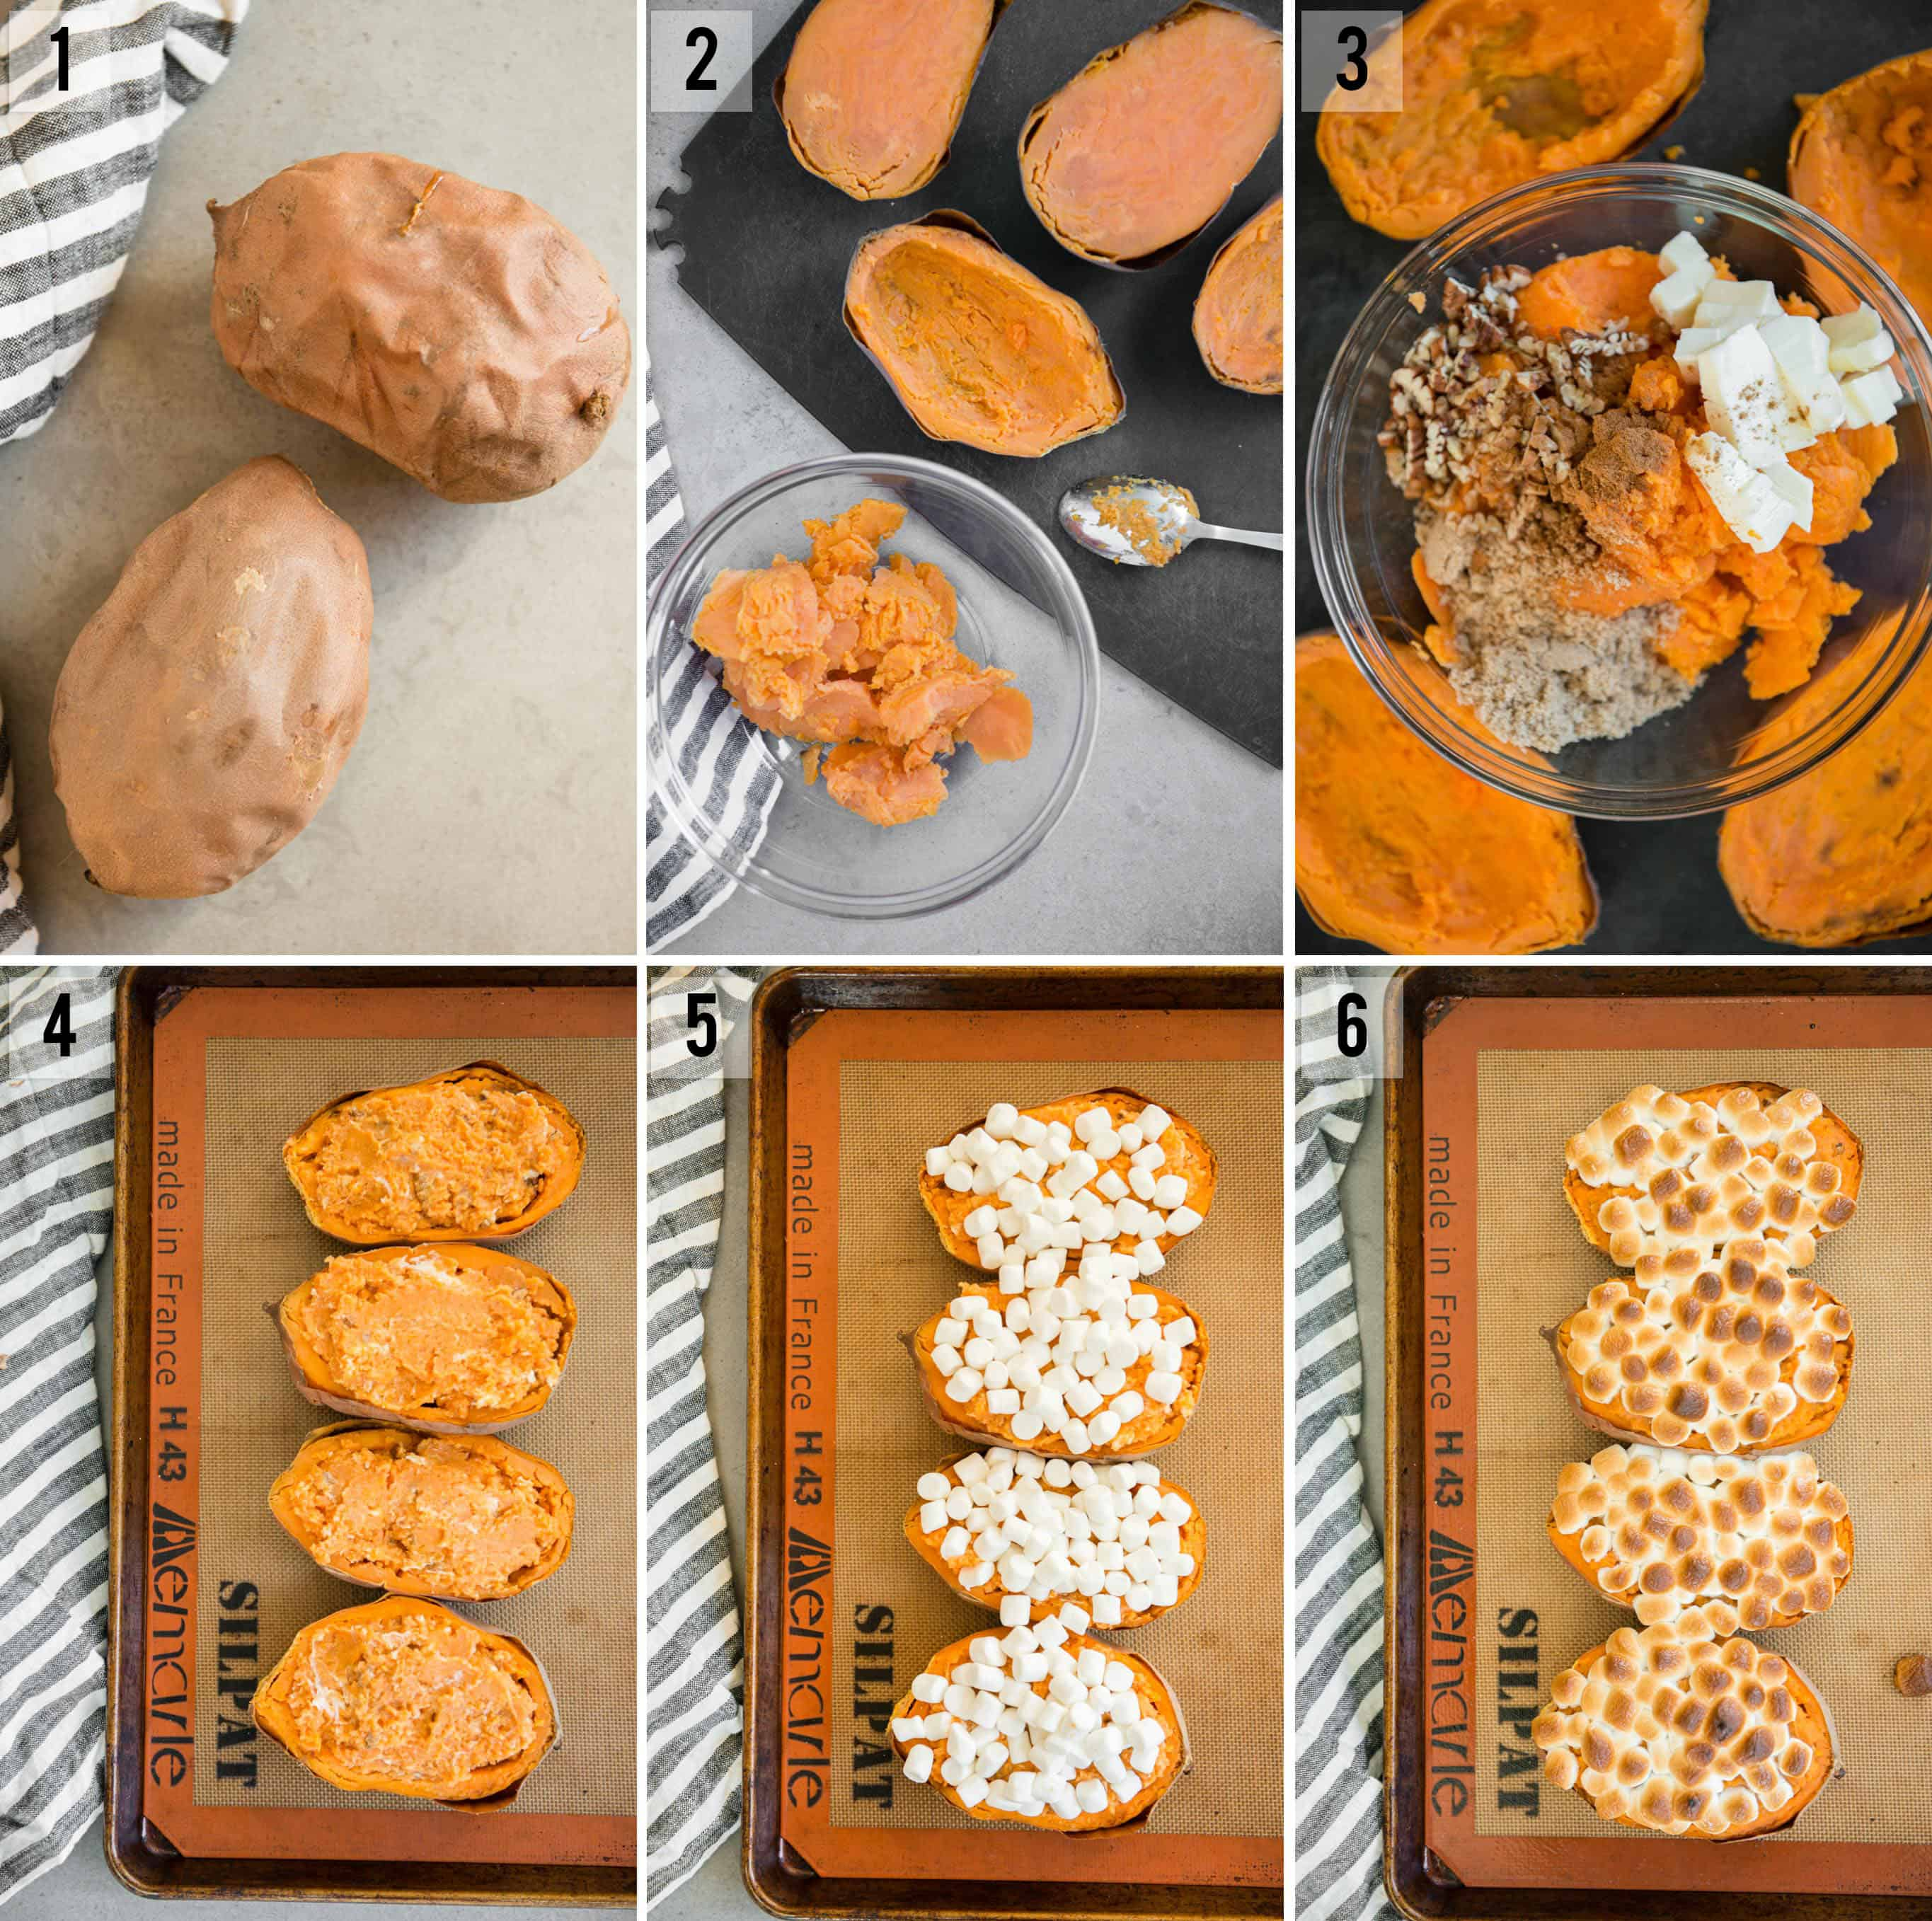 step by step instructions on how to make Twice Baked Sweet Potatoes